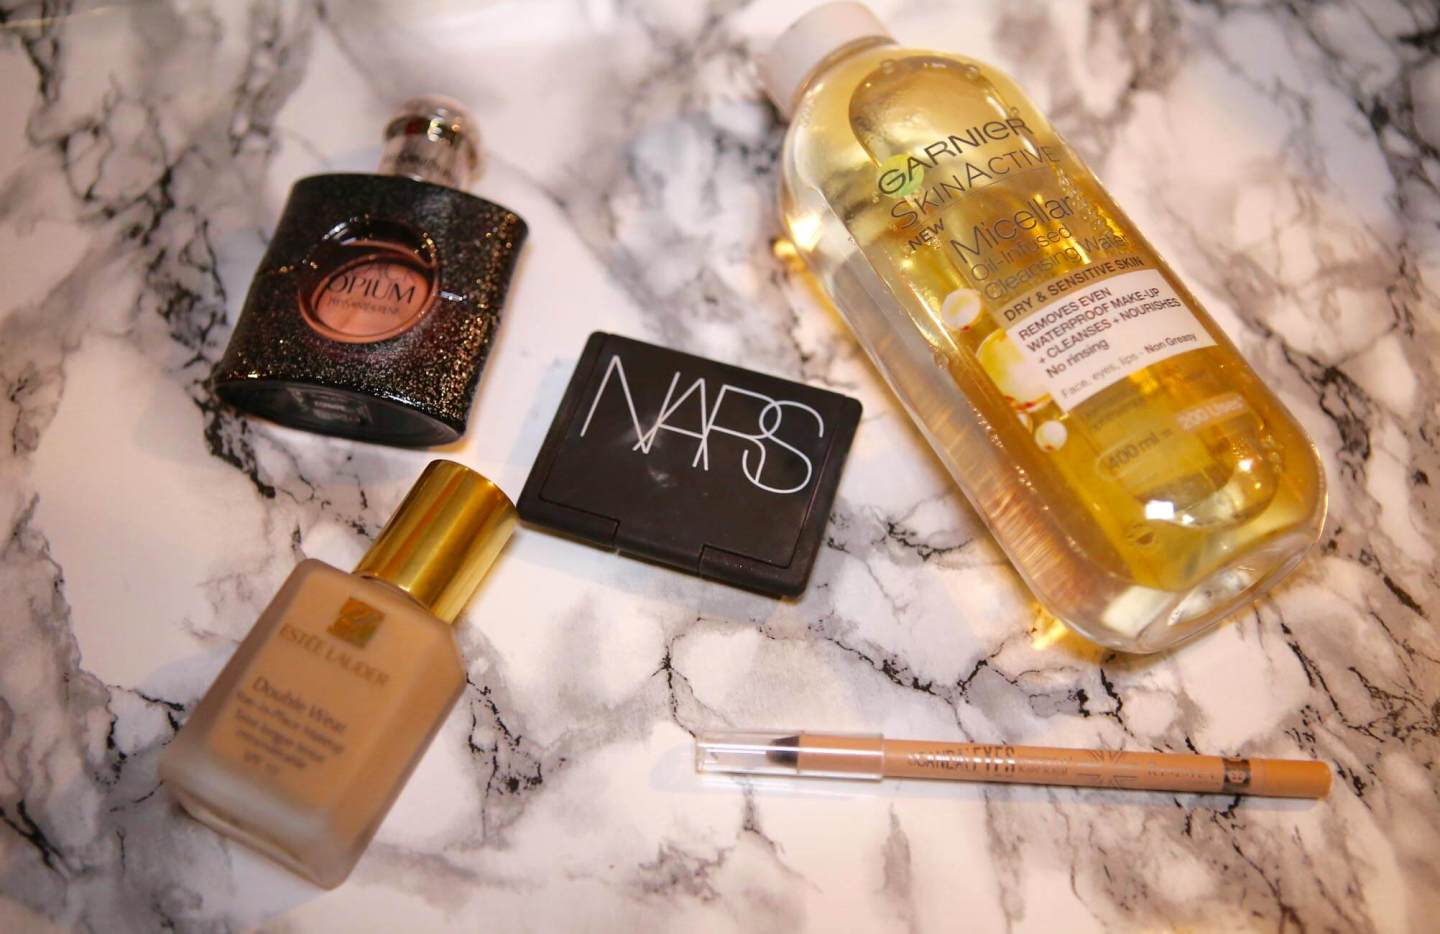 Best Beauty And Skincare Finds – March